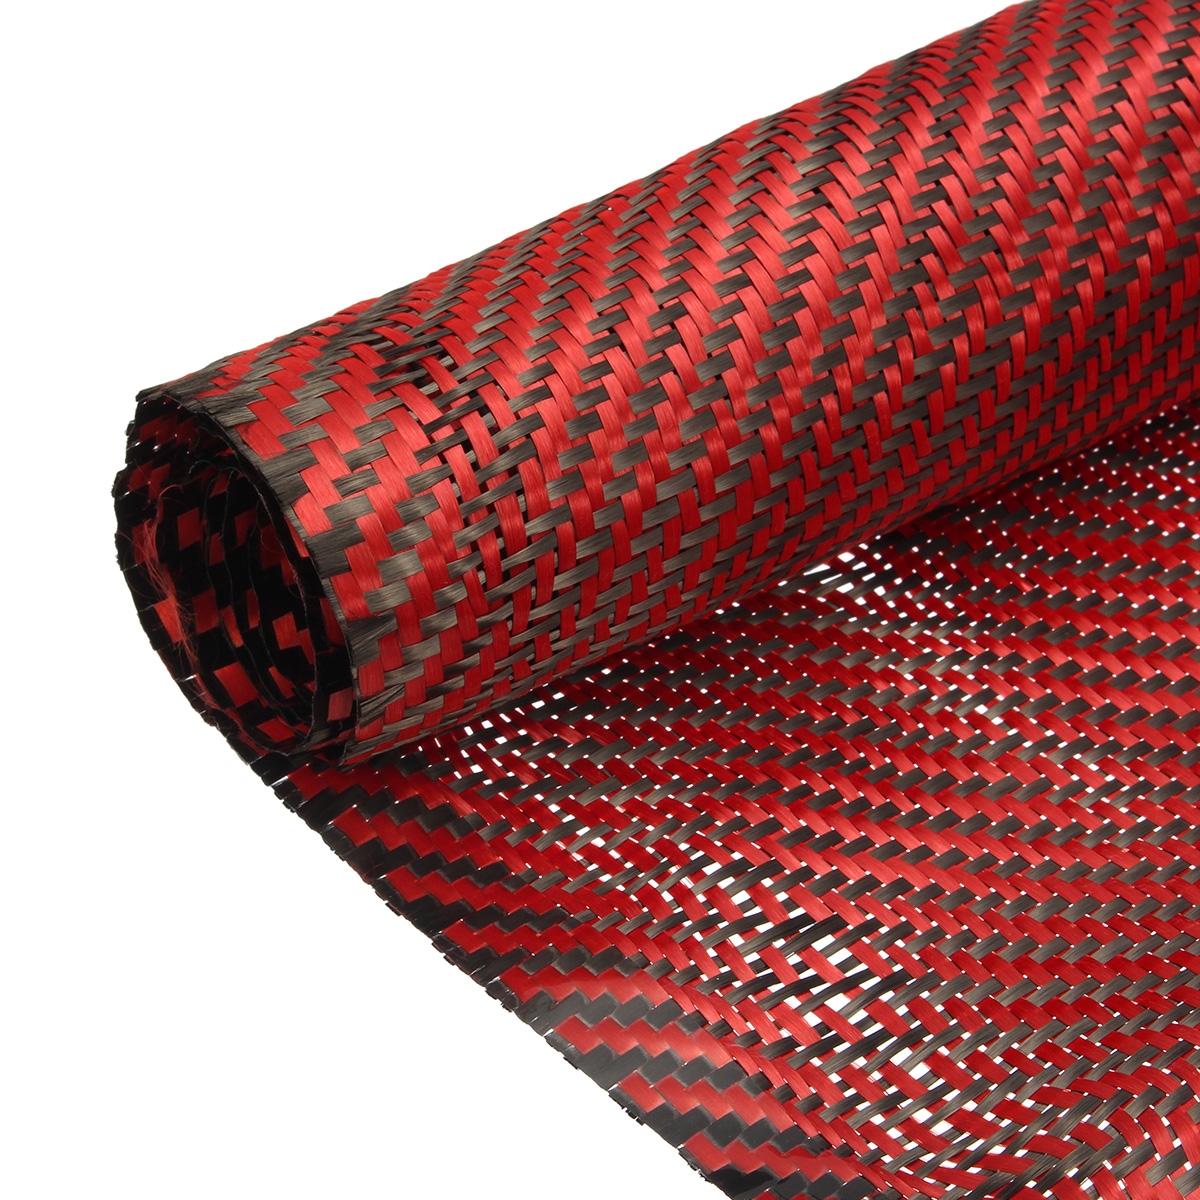 Carbon Fiber Cloth Black Red Fabric Twill Weave Panel Sheet 200gsm